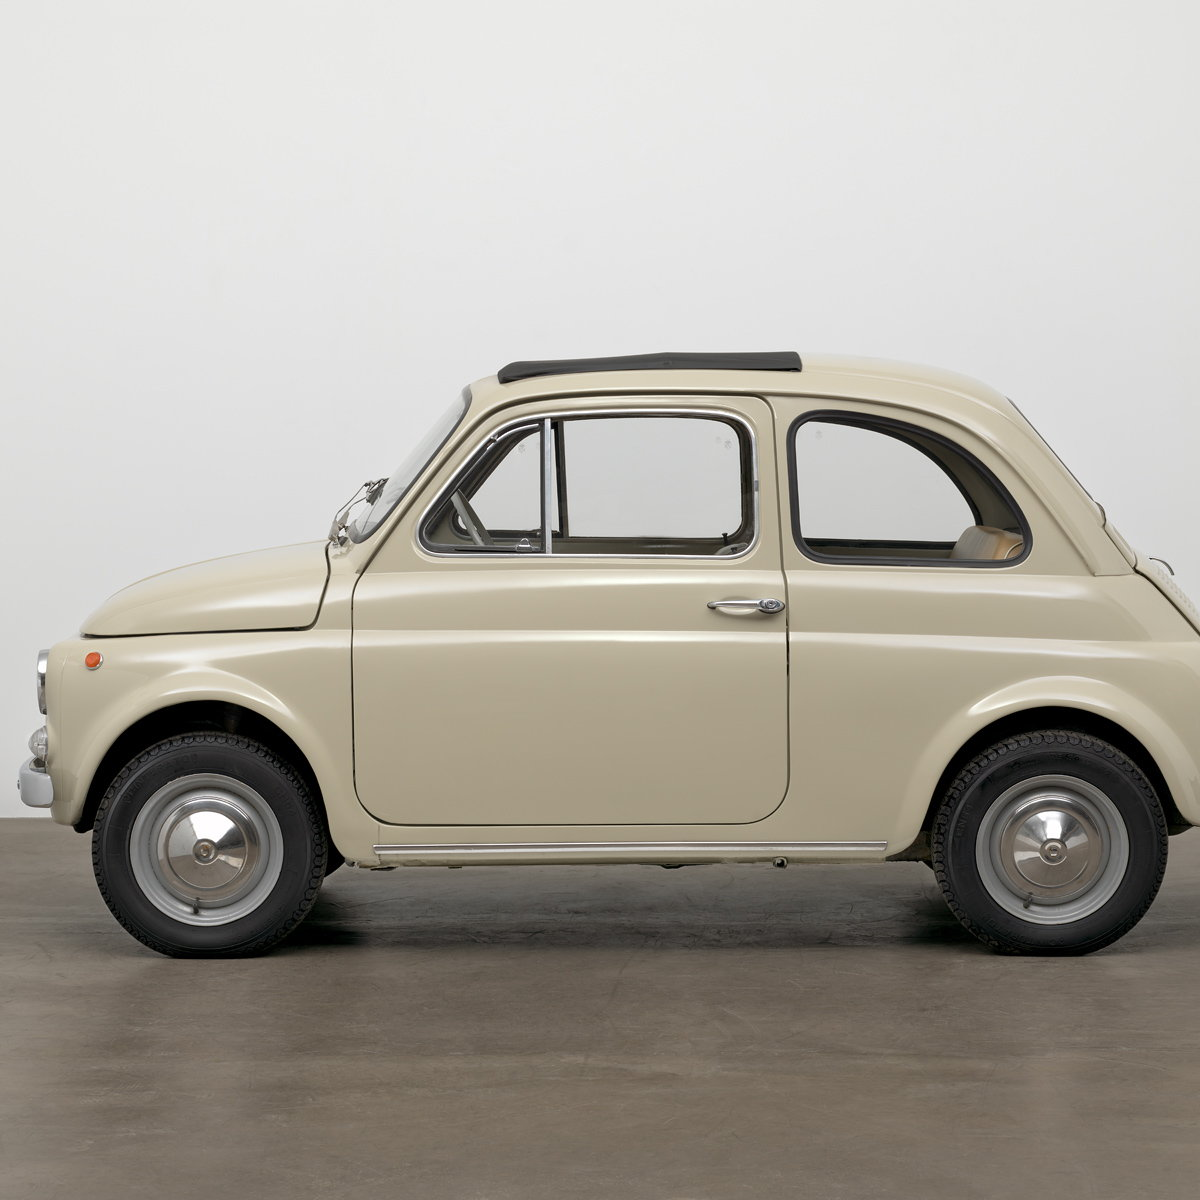 MoMA Adds Original-Condition 1968 Fiat 500 to Collection